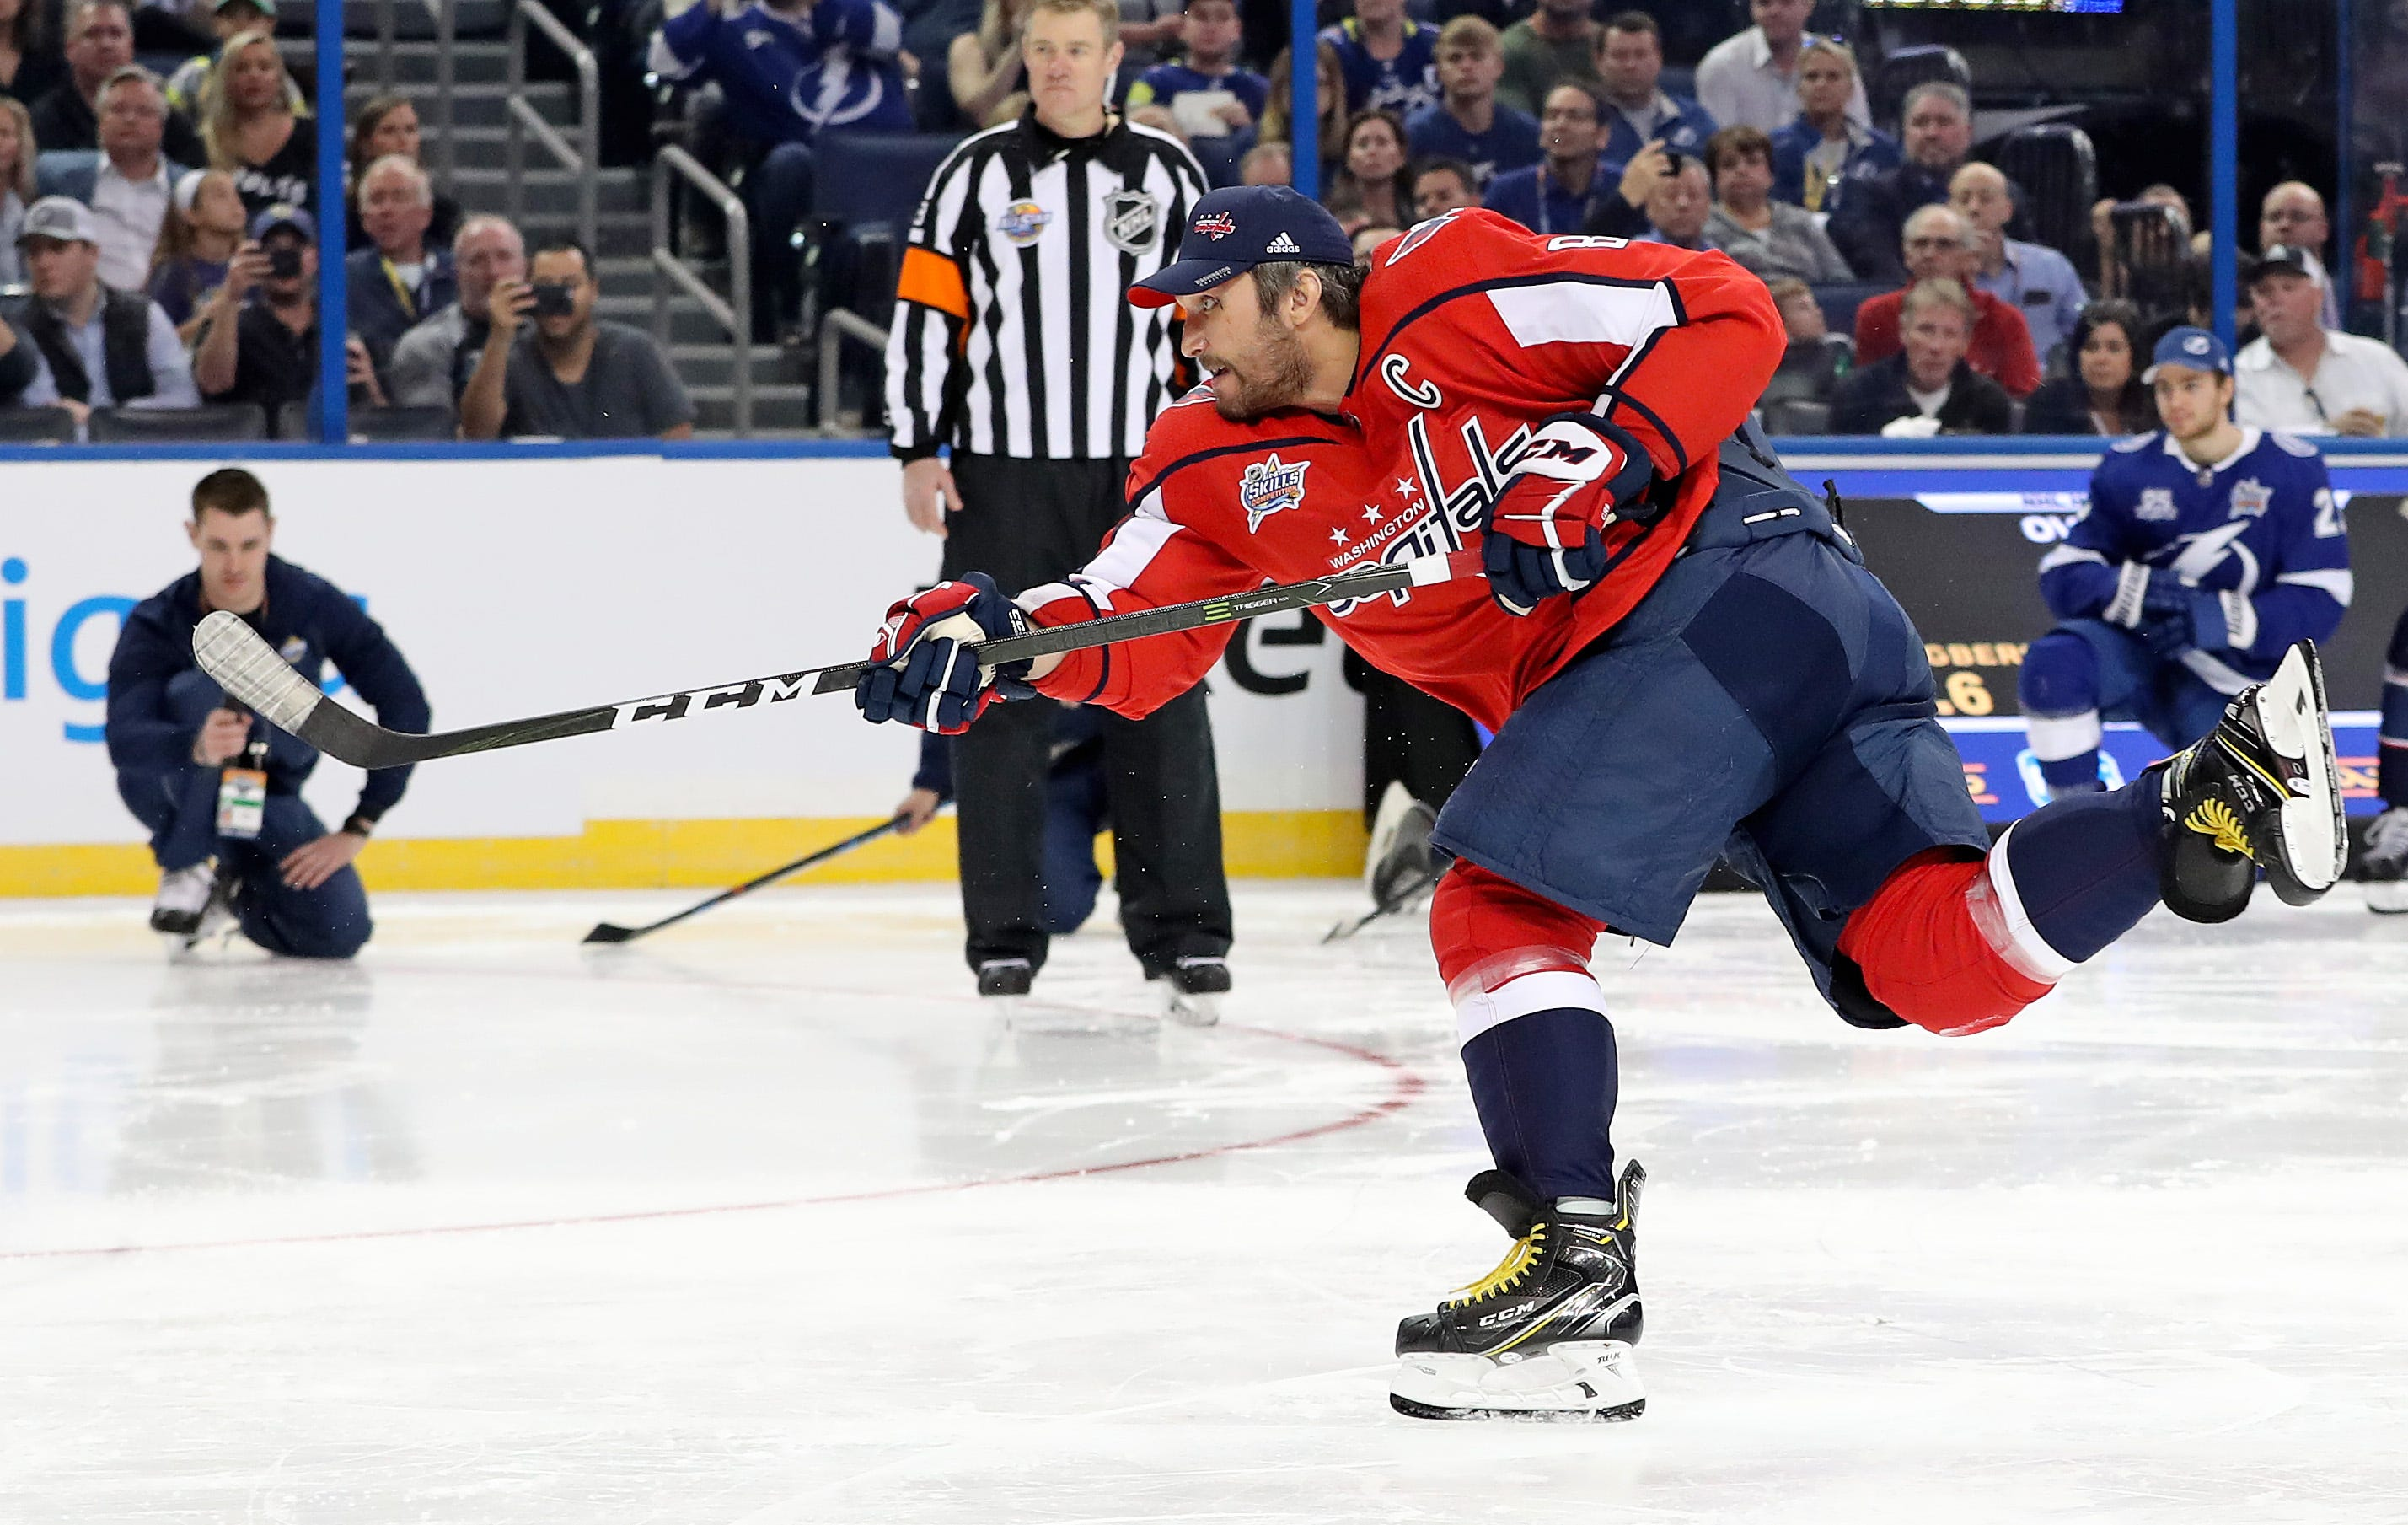 Alex Ovechkin has hardest shot at NHL All-Star skills competition